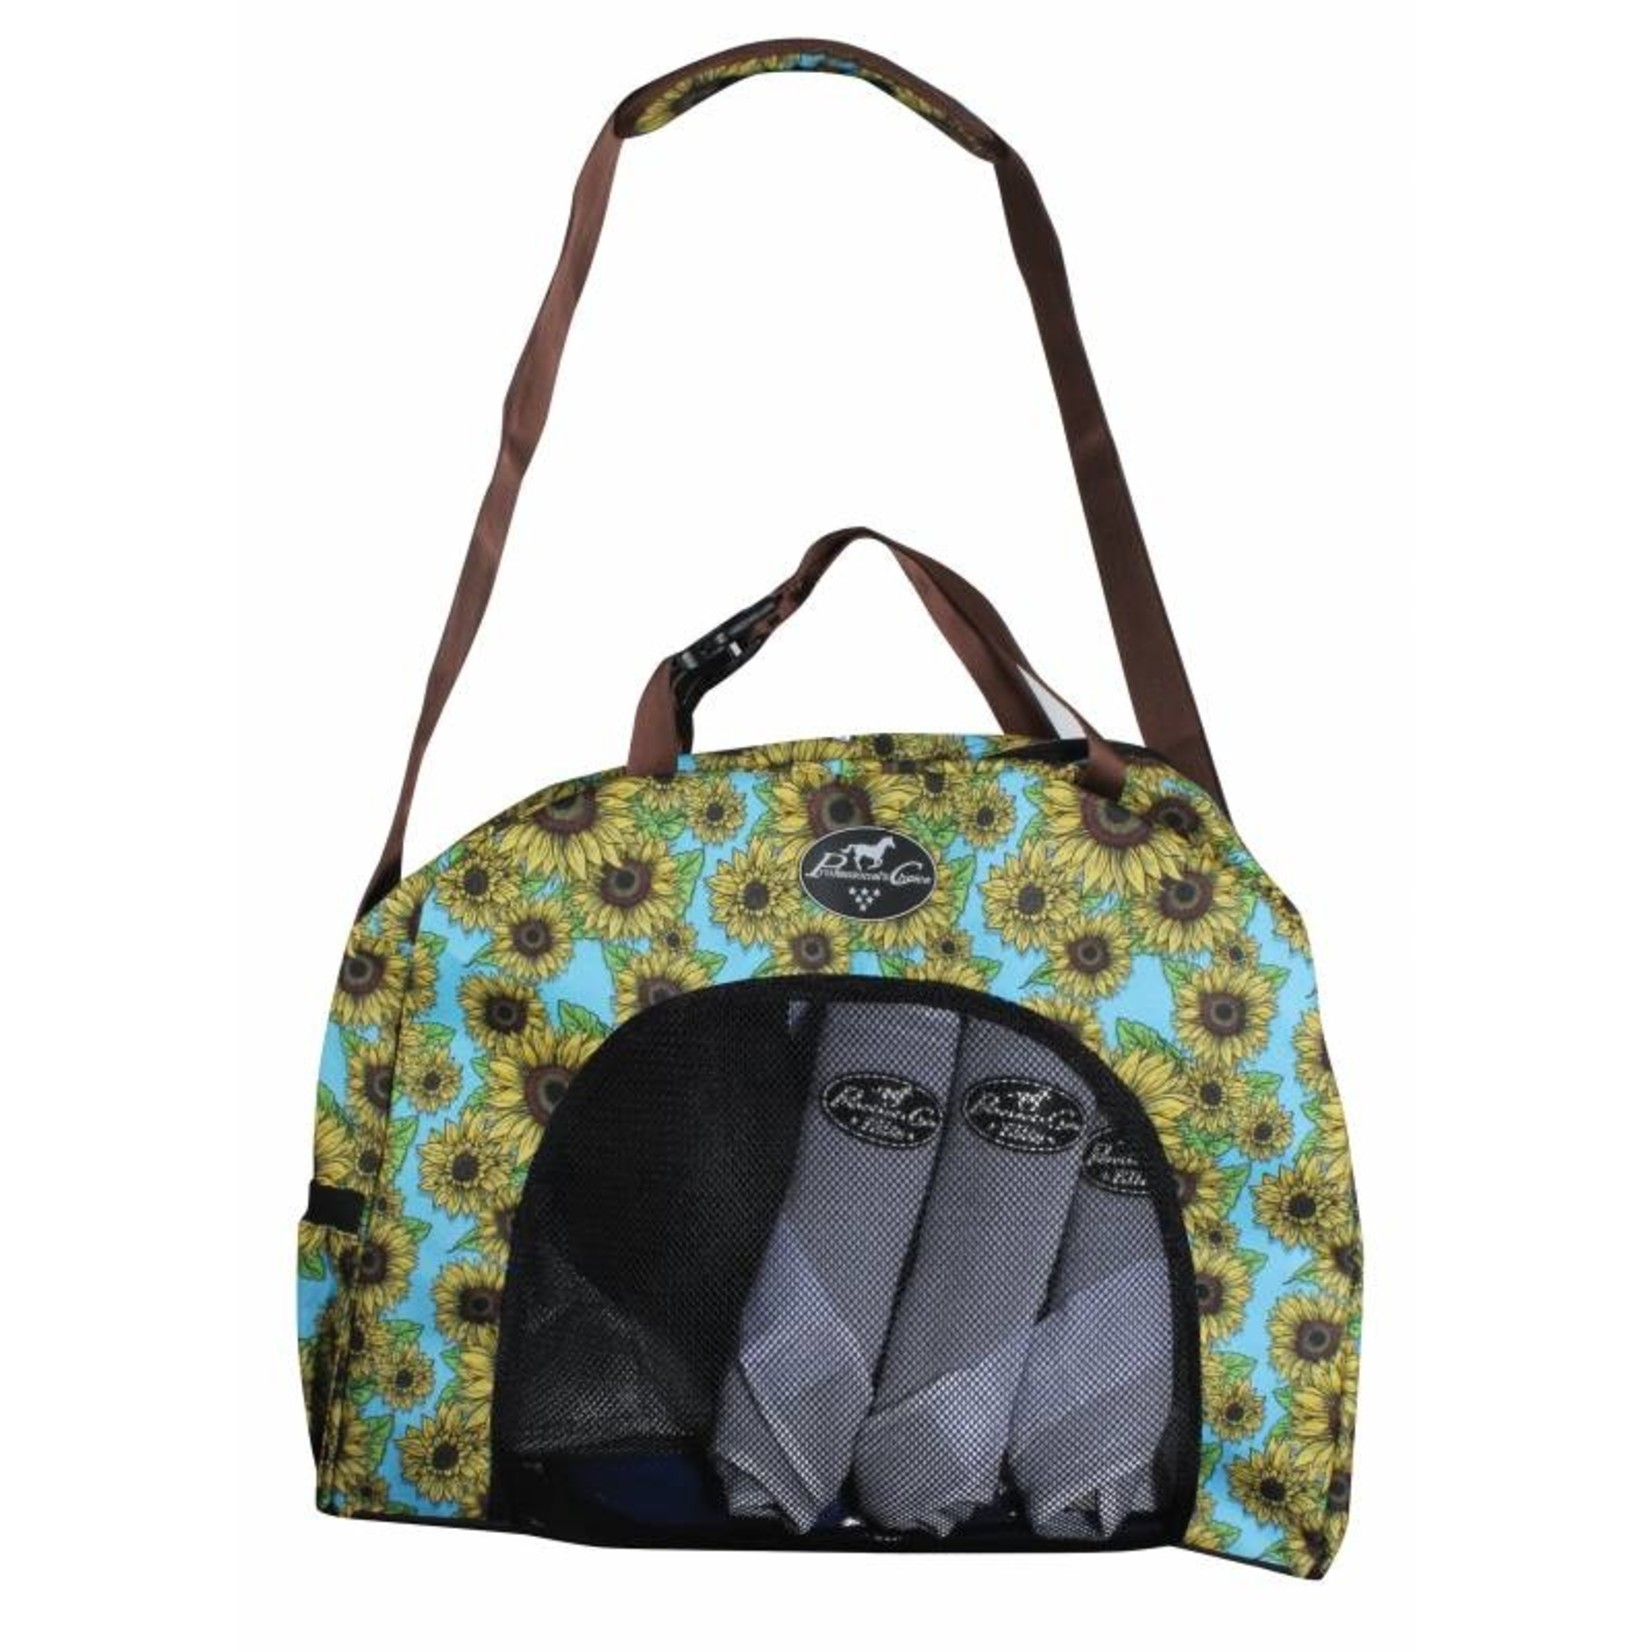 Professional's Choice PC Carry-All Bag - Sunflower